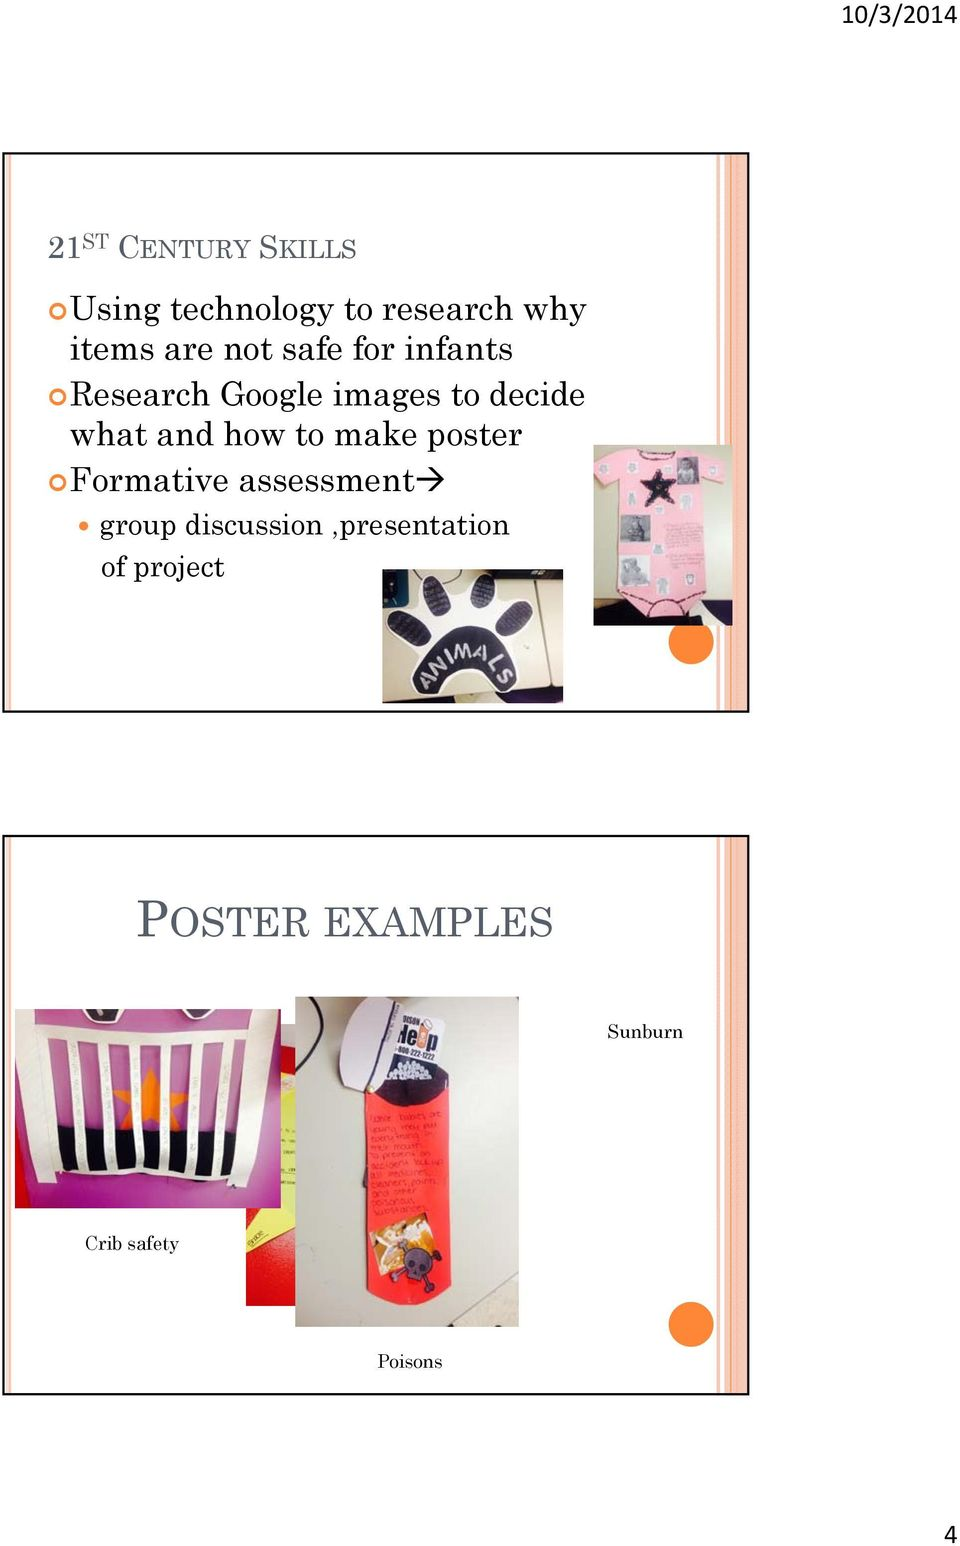 how to make poster Formative assessment group